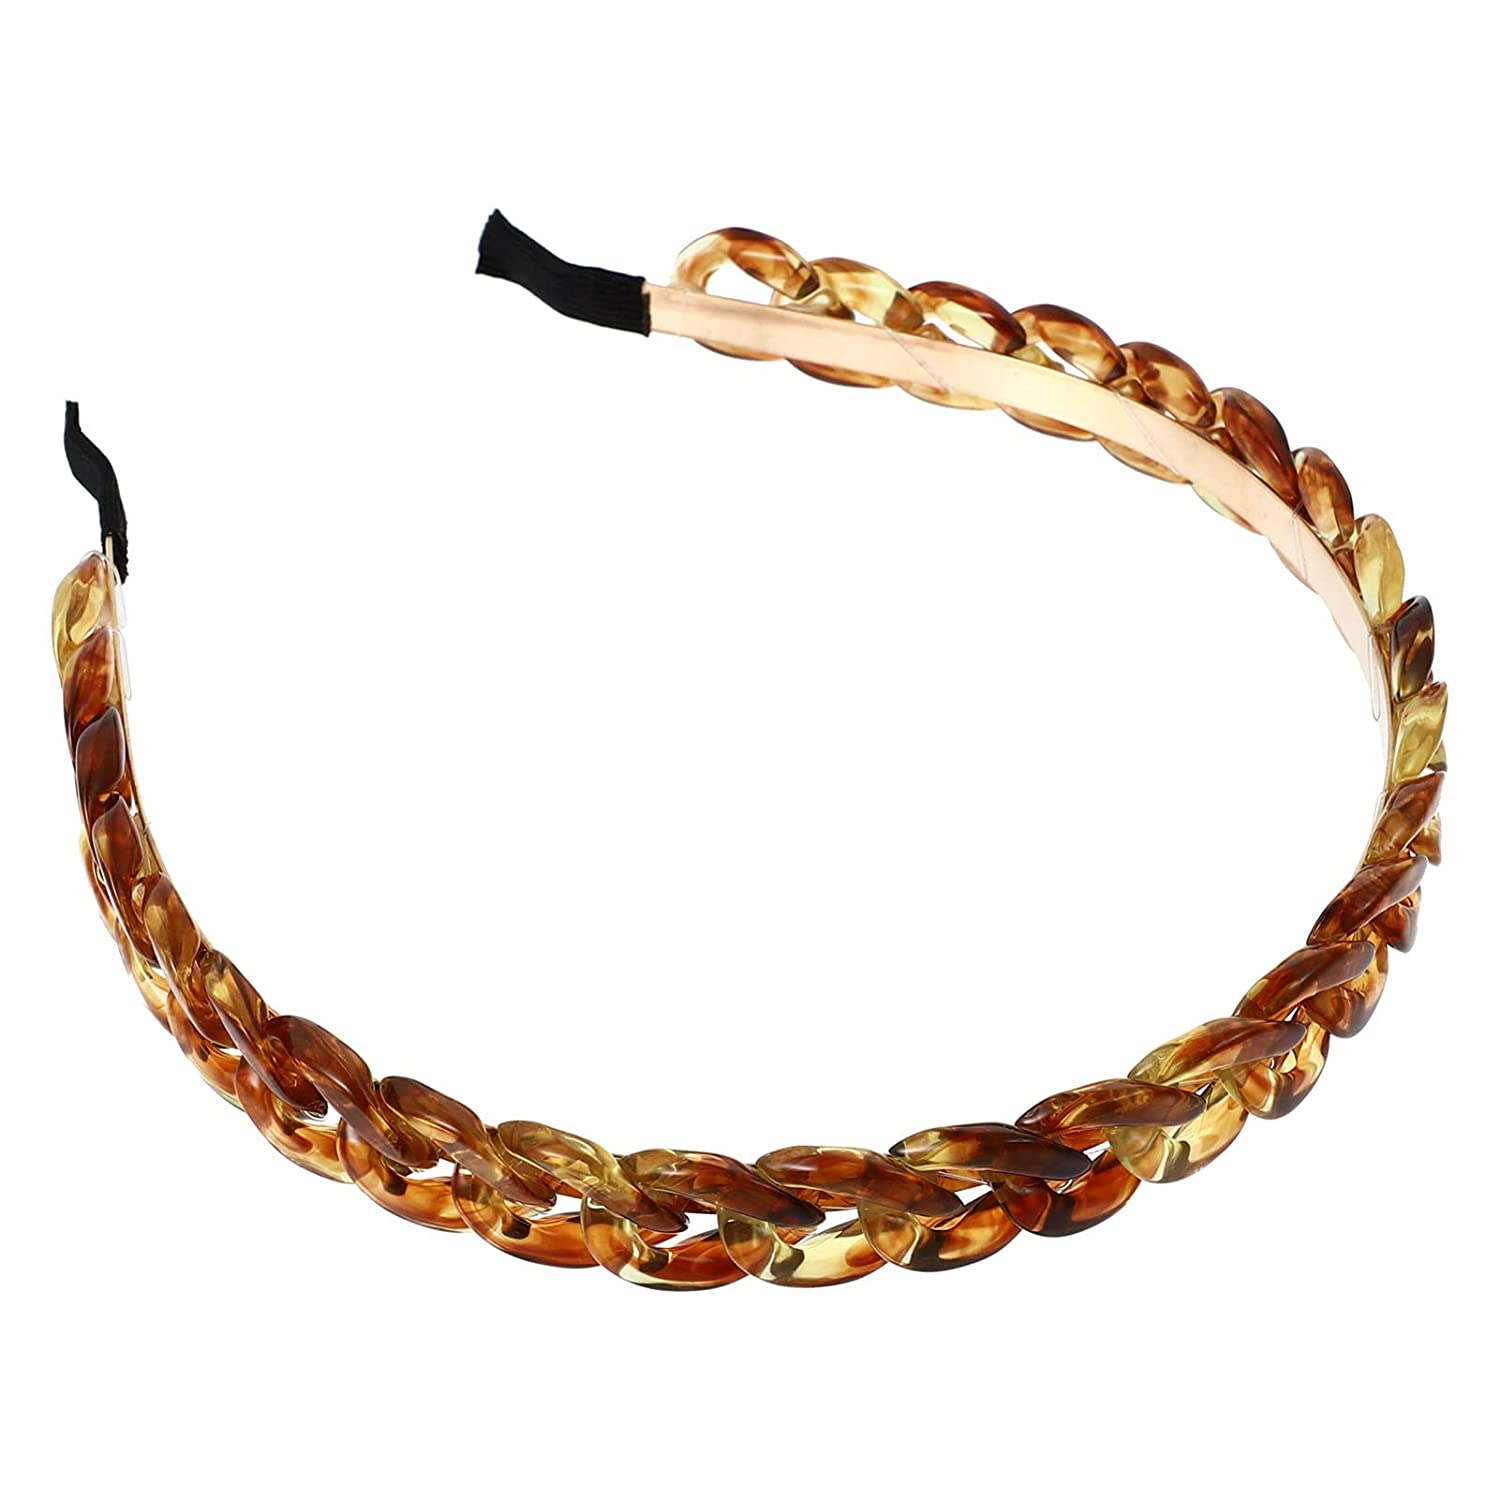 Lurrose Chain Headband for Women Acrylic Chain Link Hair Hoop Twisted Hair Chain Statement Hairband for Women and Girls Amber